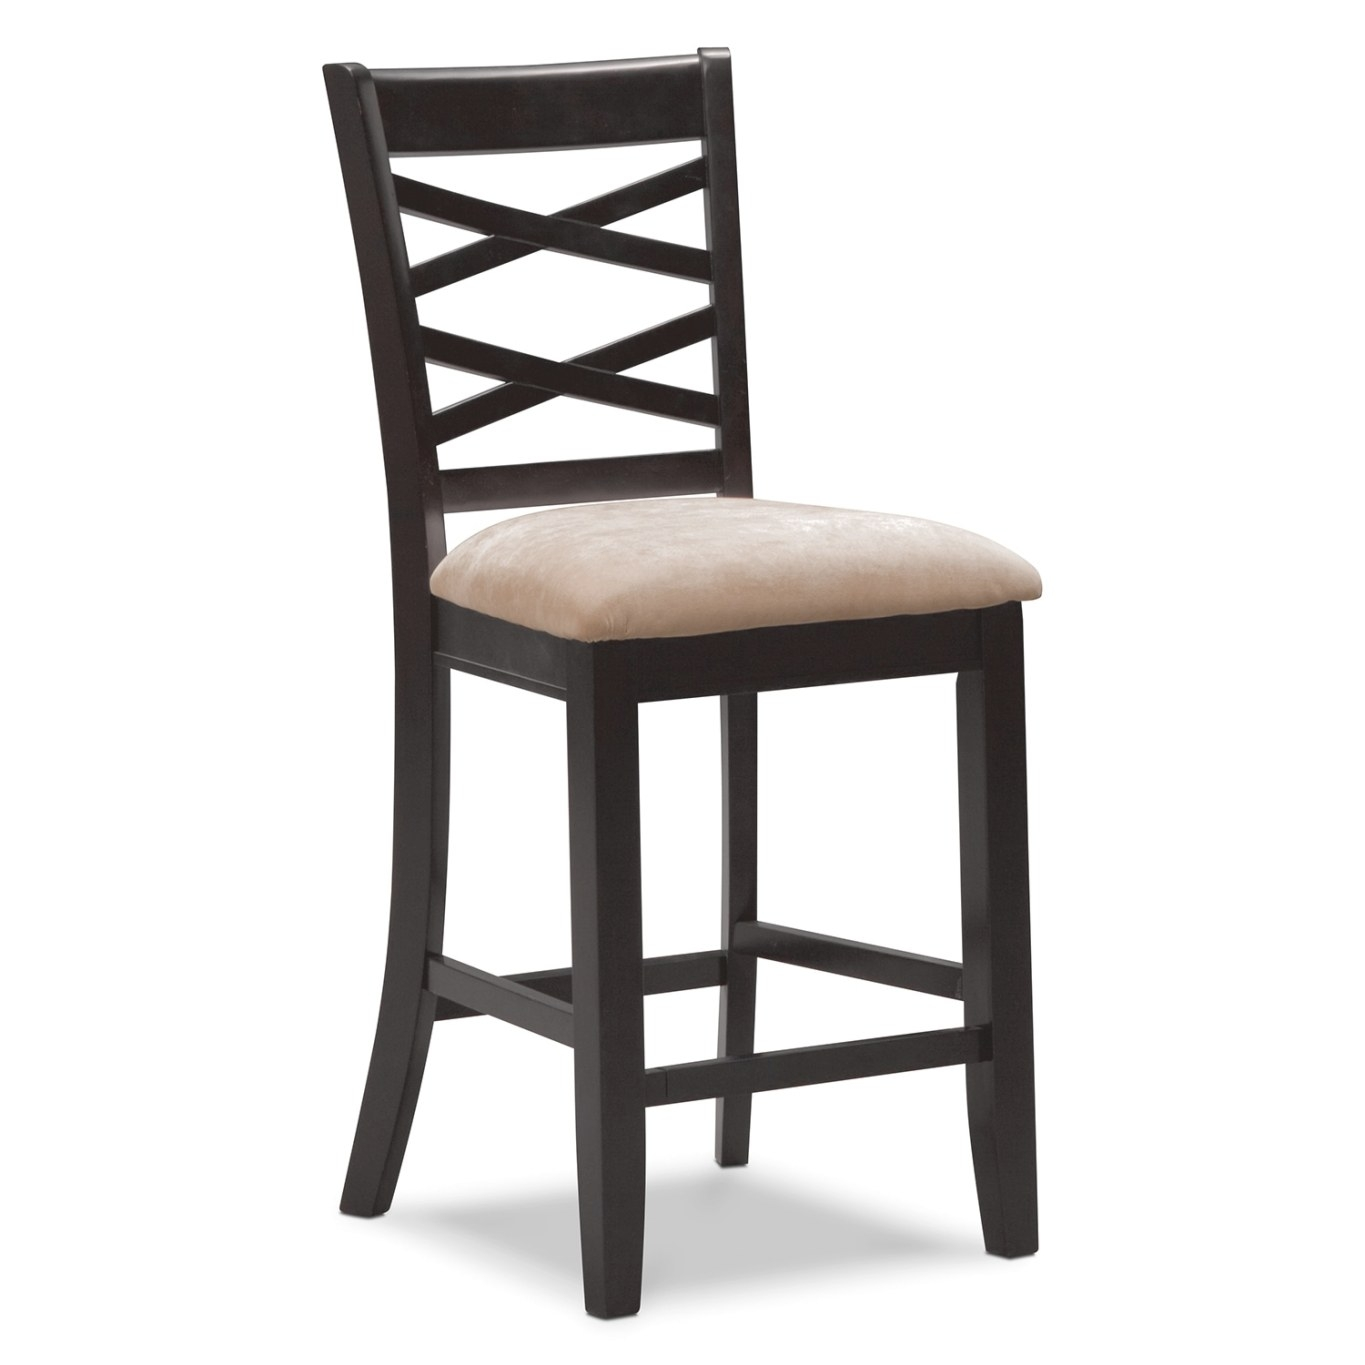 Americana Espresso Counter-Height Stool | Value City Furniture with Counter Height Bar Stools